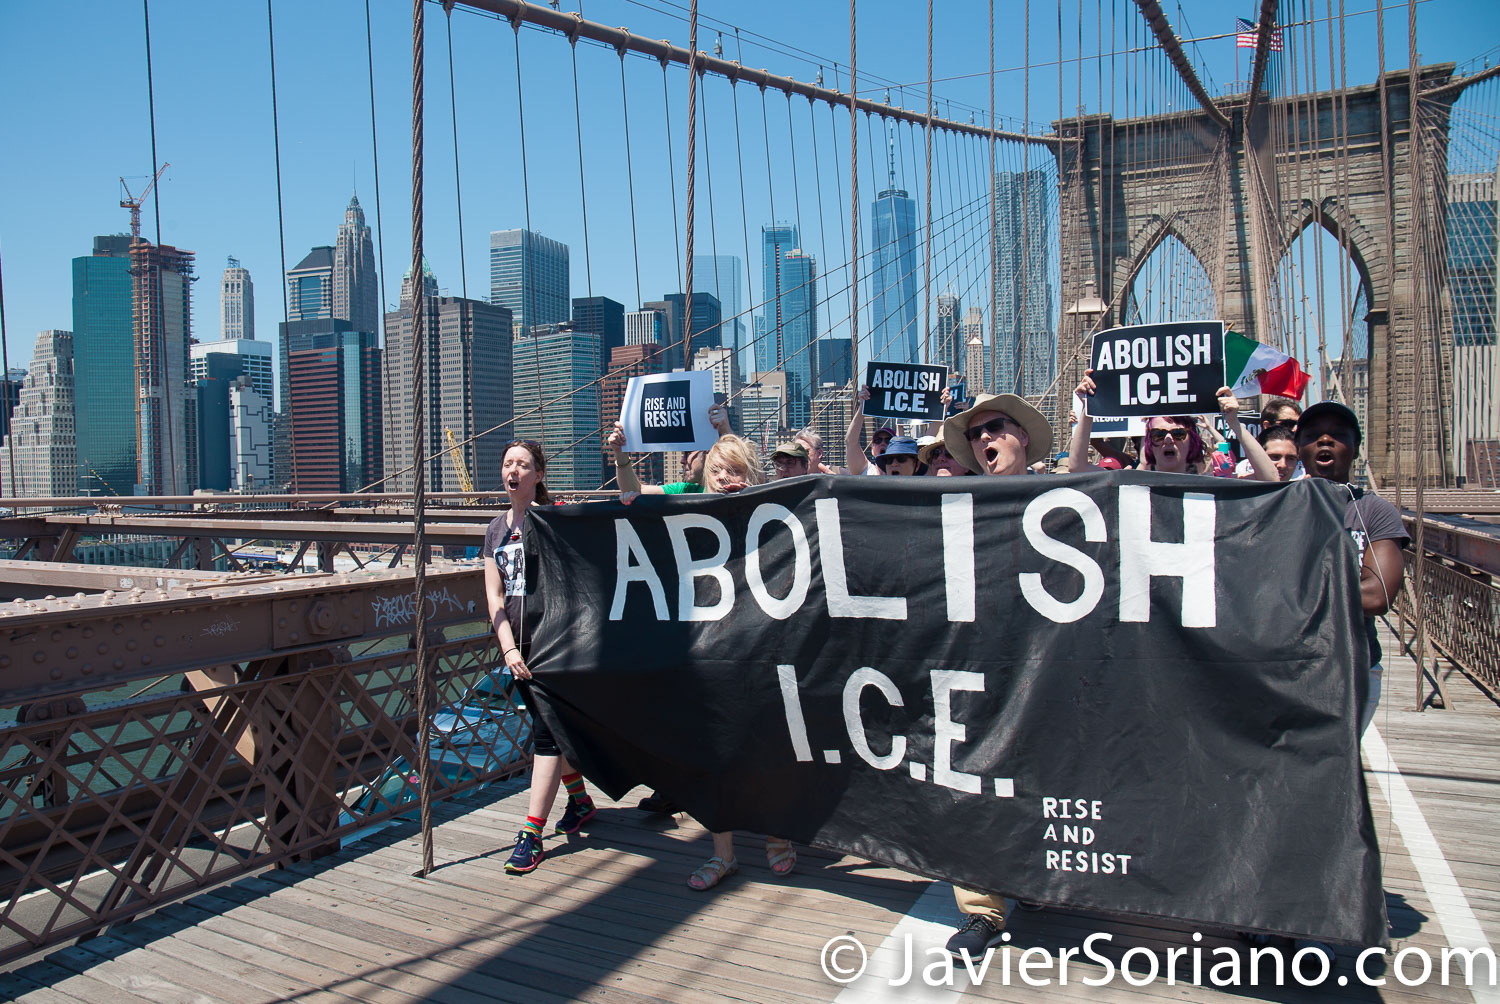 """6/30/2018. March: """"Families Belong Together."""" People crossing the Brooklyn Bridge. People's protectors are marching from Foley Square in Manhattan to Cadman Plaza in Brooklyn. The banner says: """"ABOLISH I.C.E.""""_Rise and resist Photo by Javier Soriano/www.JavierSoriano.com"""